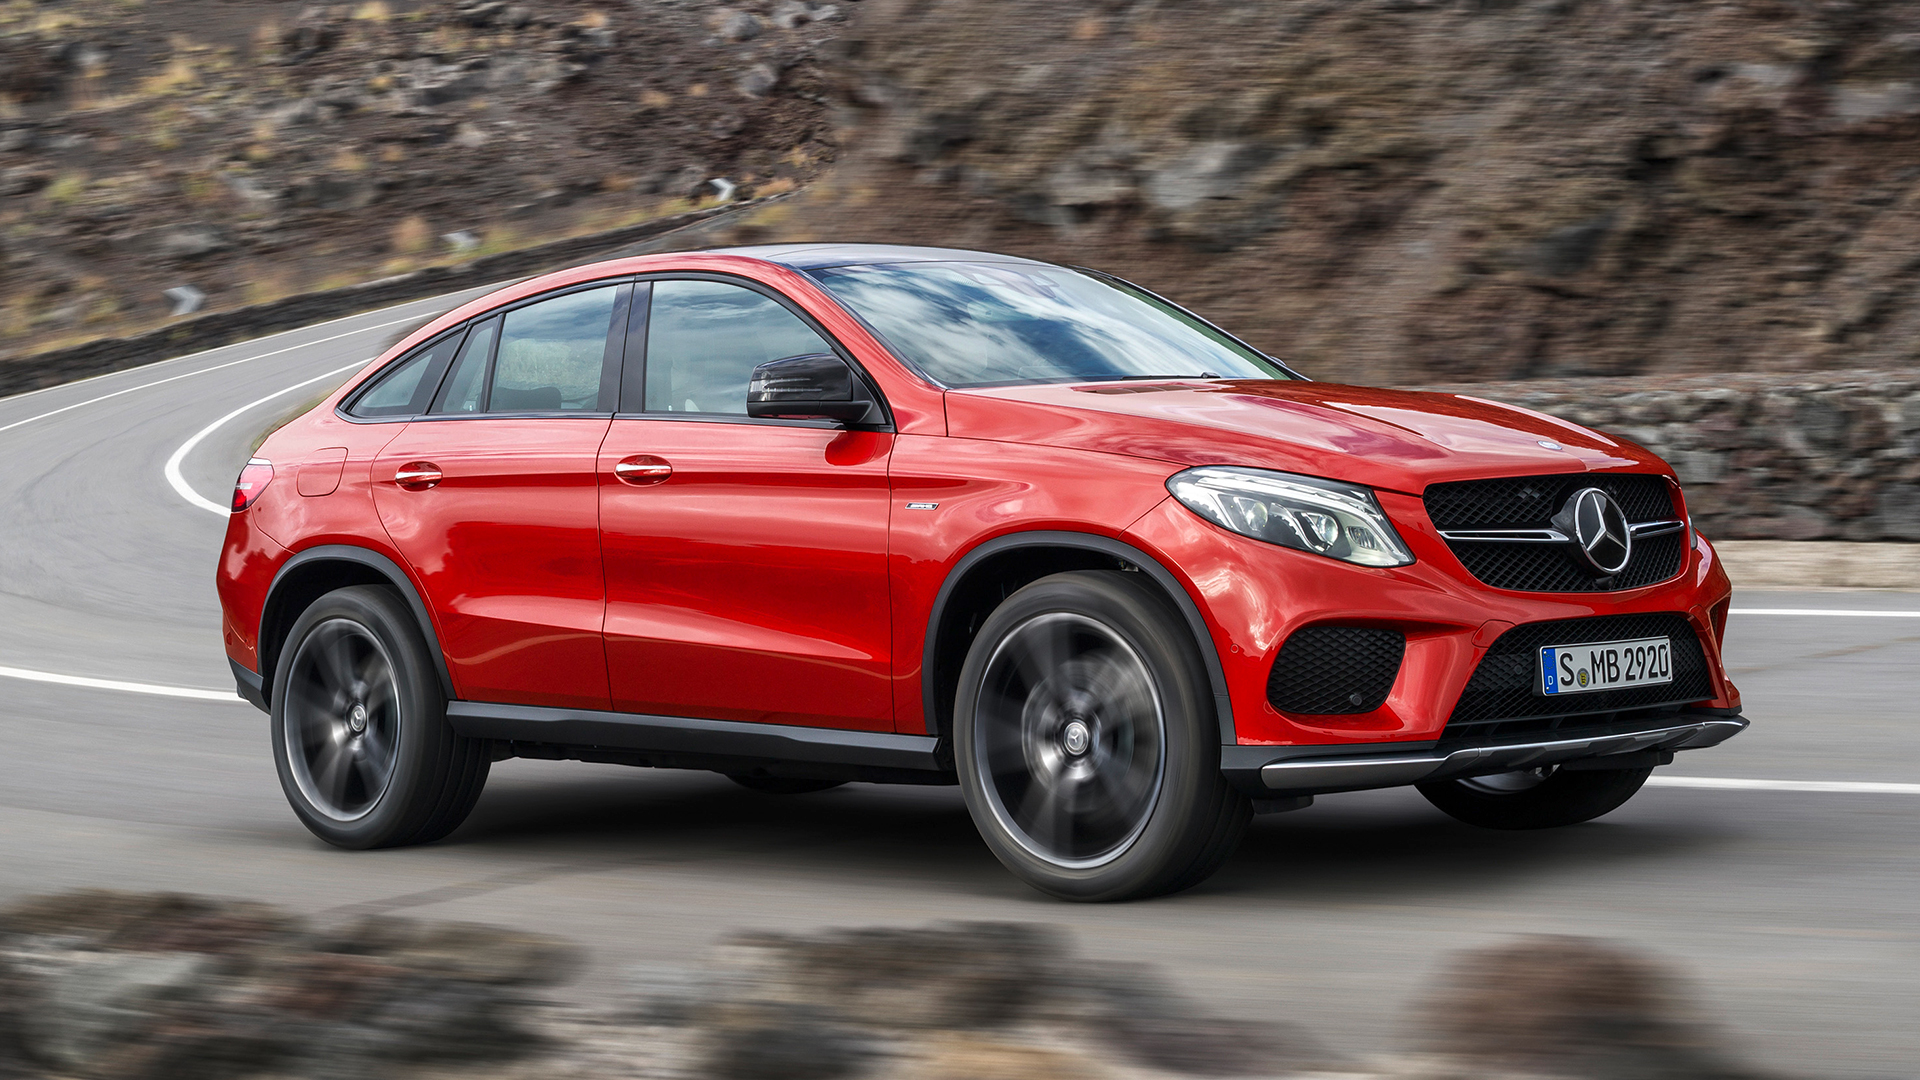 Used mercedes benz gle class cars for sale on auto trader uk for Www mercedes benz used cars